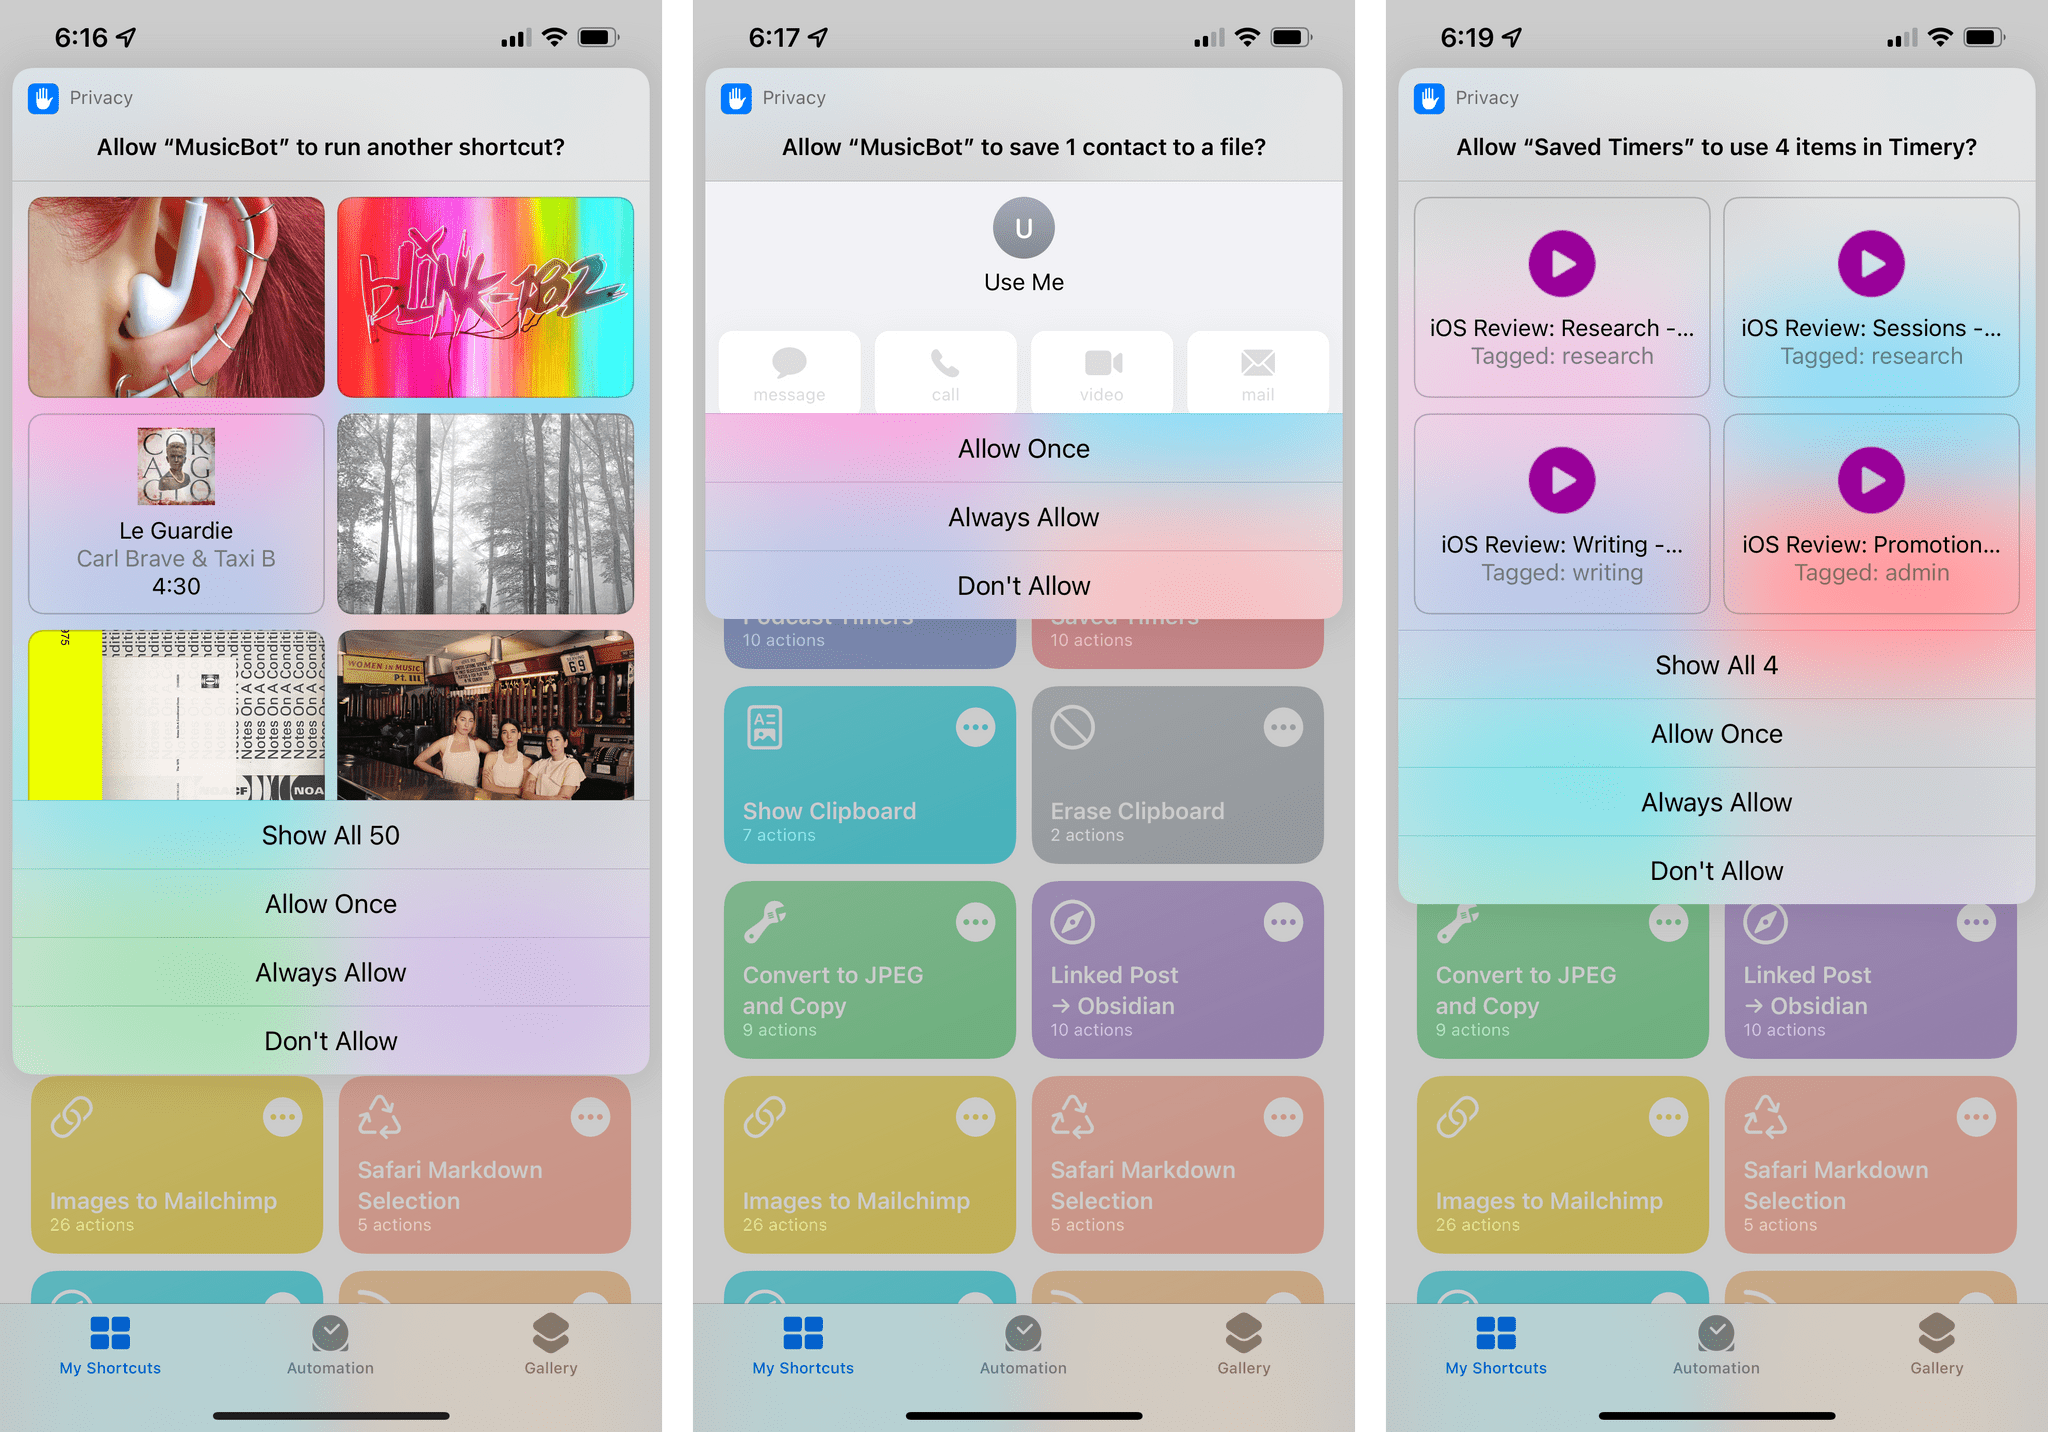 New permission requests in iOS 15.